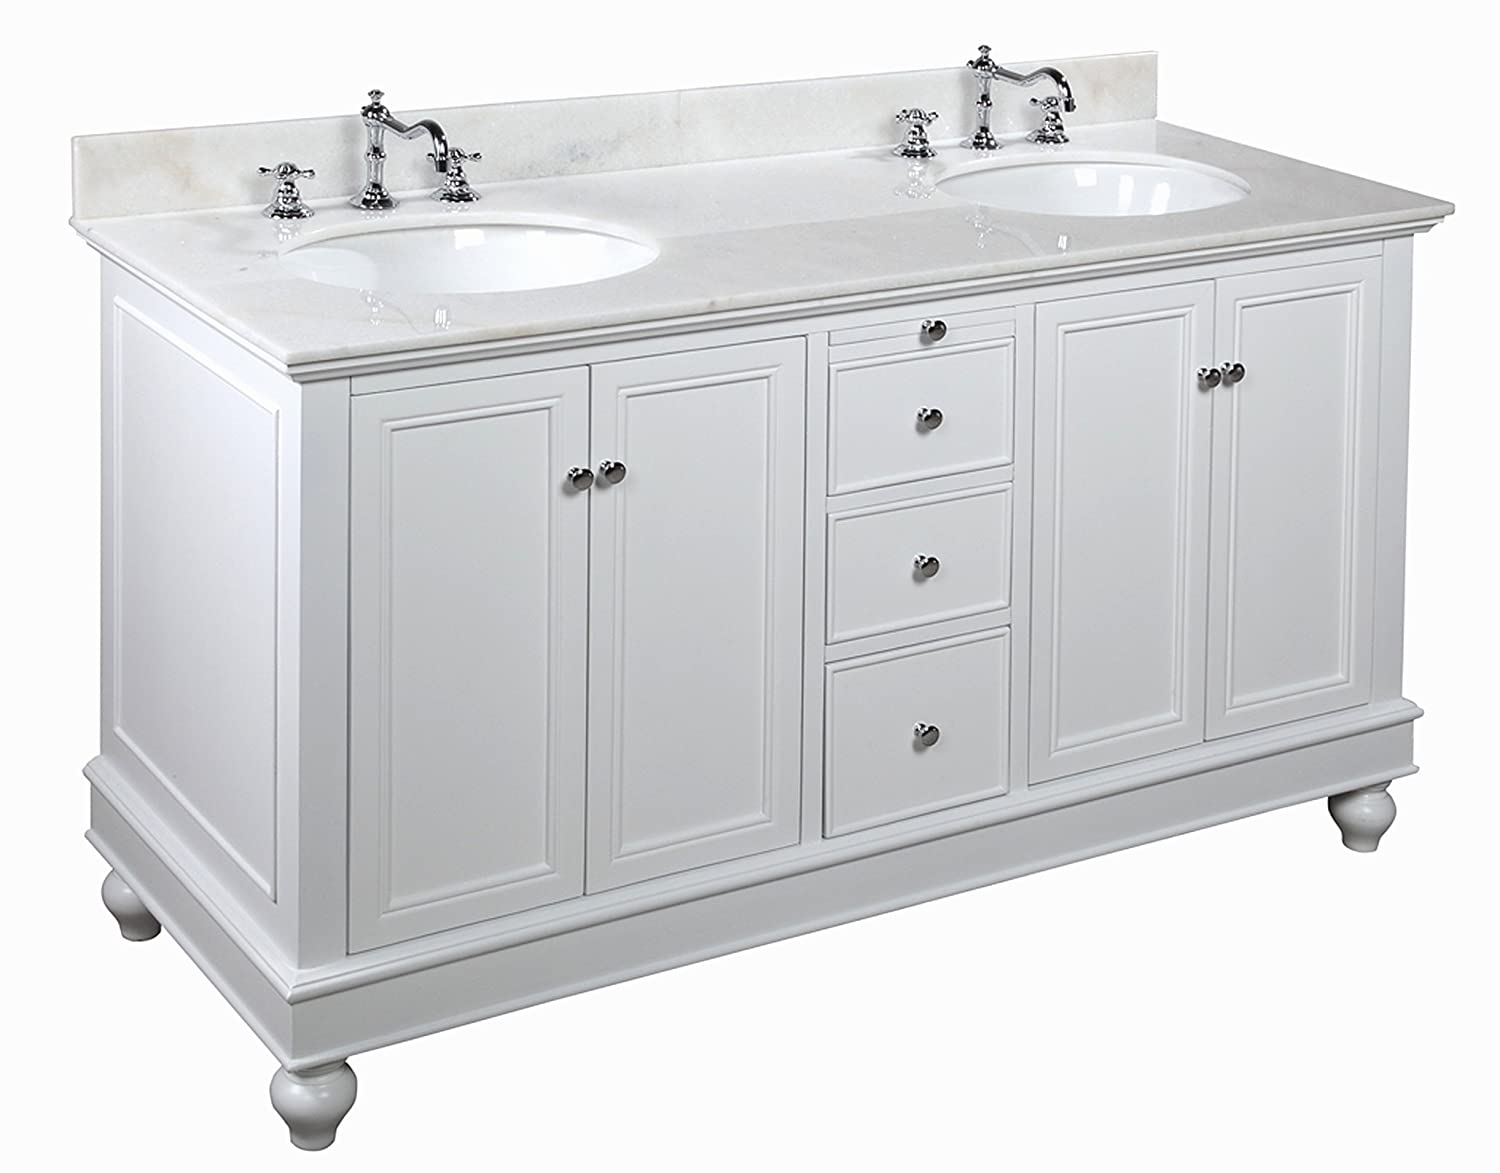 low cost kitchen bath collection kbc222wtwt bella double